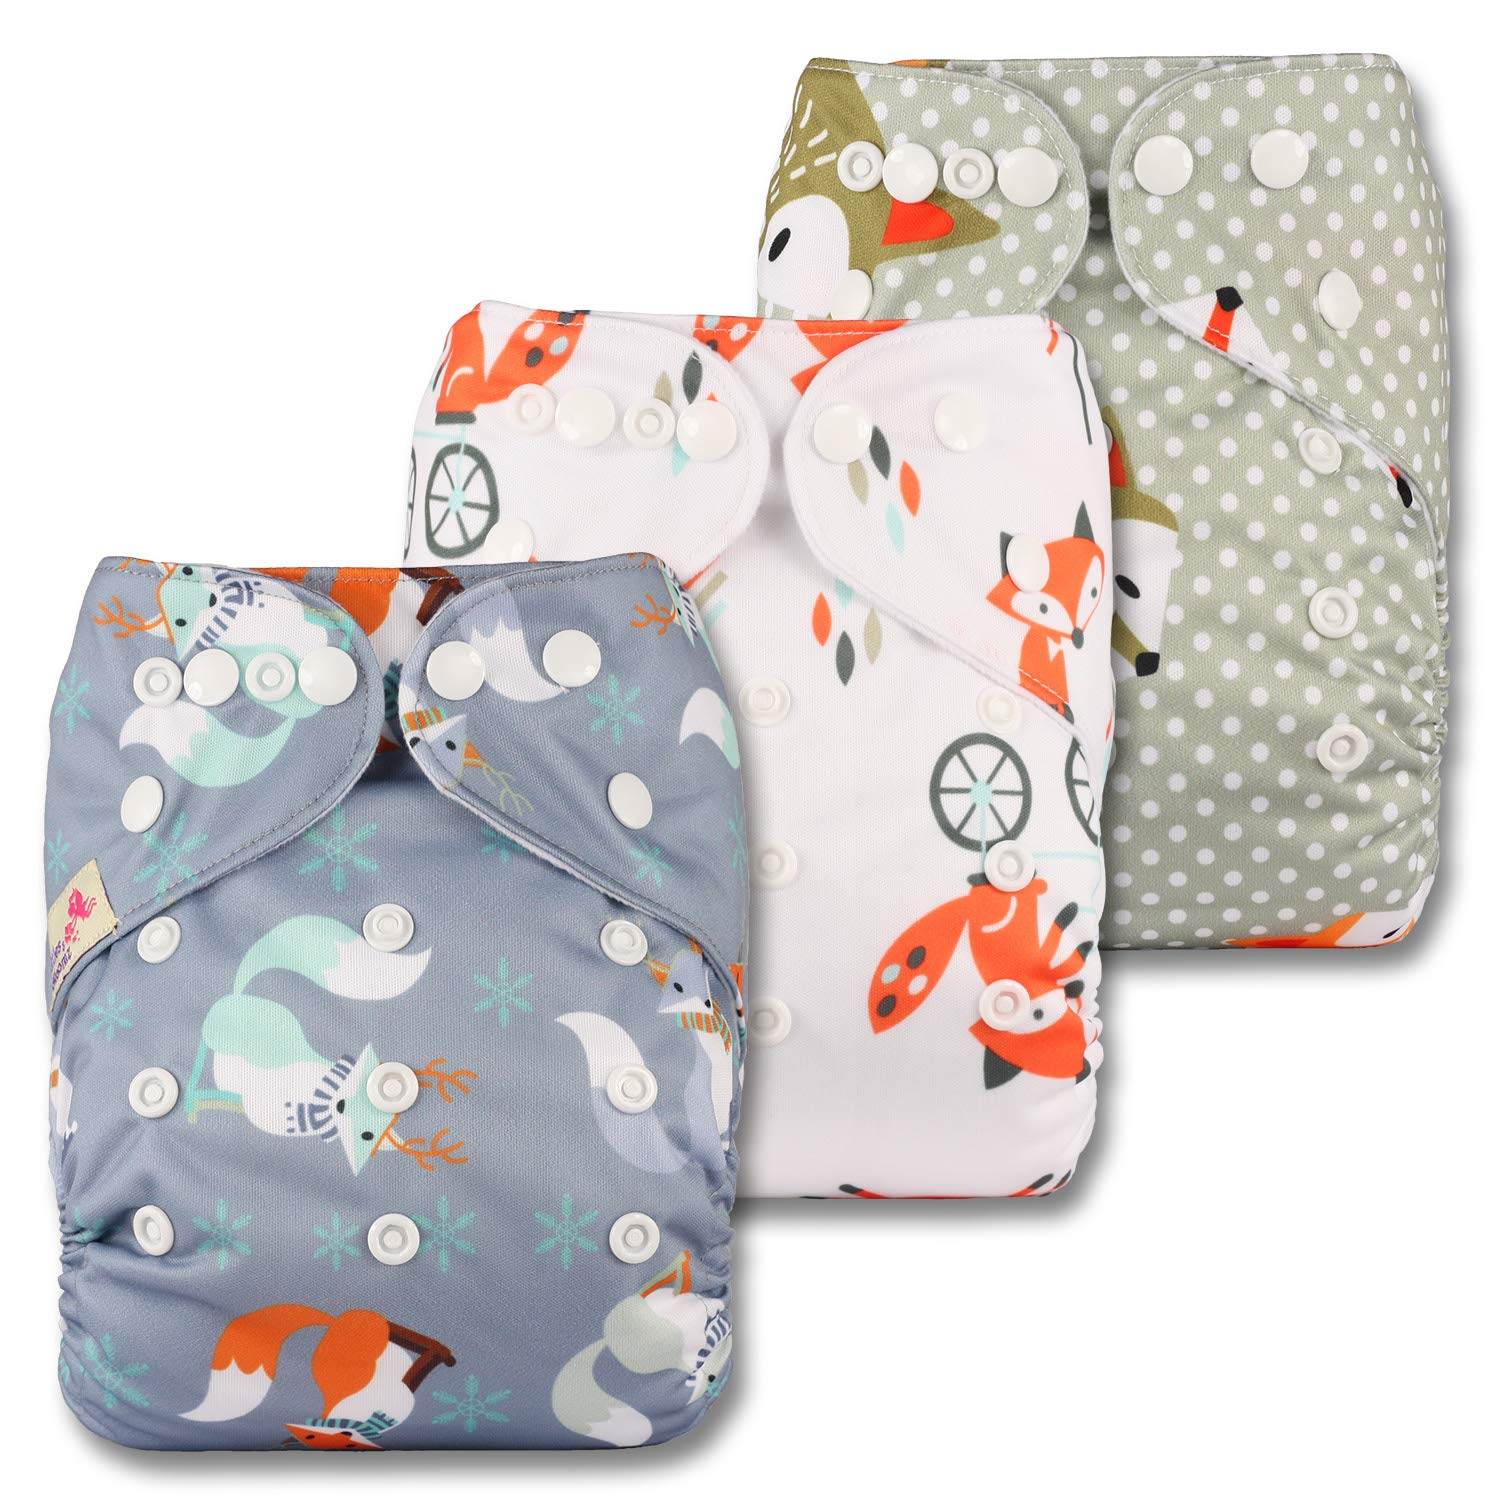 Patterns 1004 Fastener: Hook-Loop Littles /& Bloomz Set of 10 Reusable Pocket Cloth Nappy with 20 Microfibre Inserts